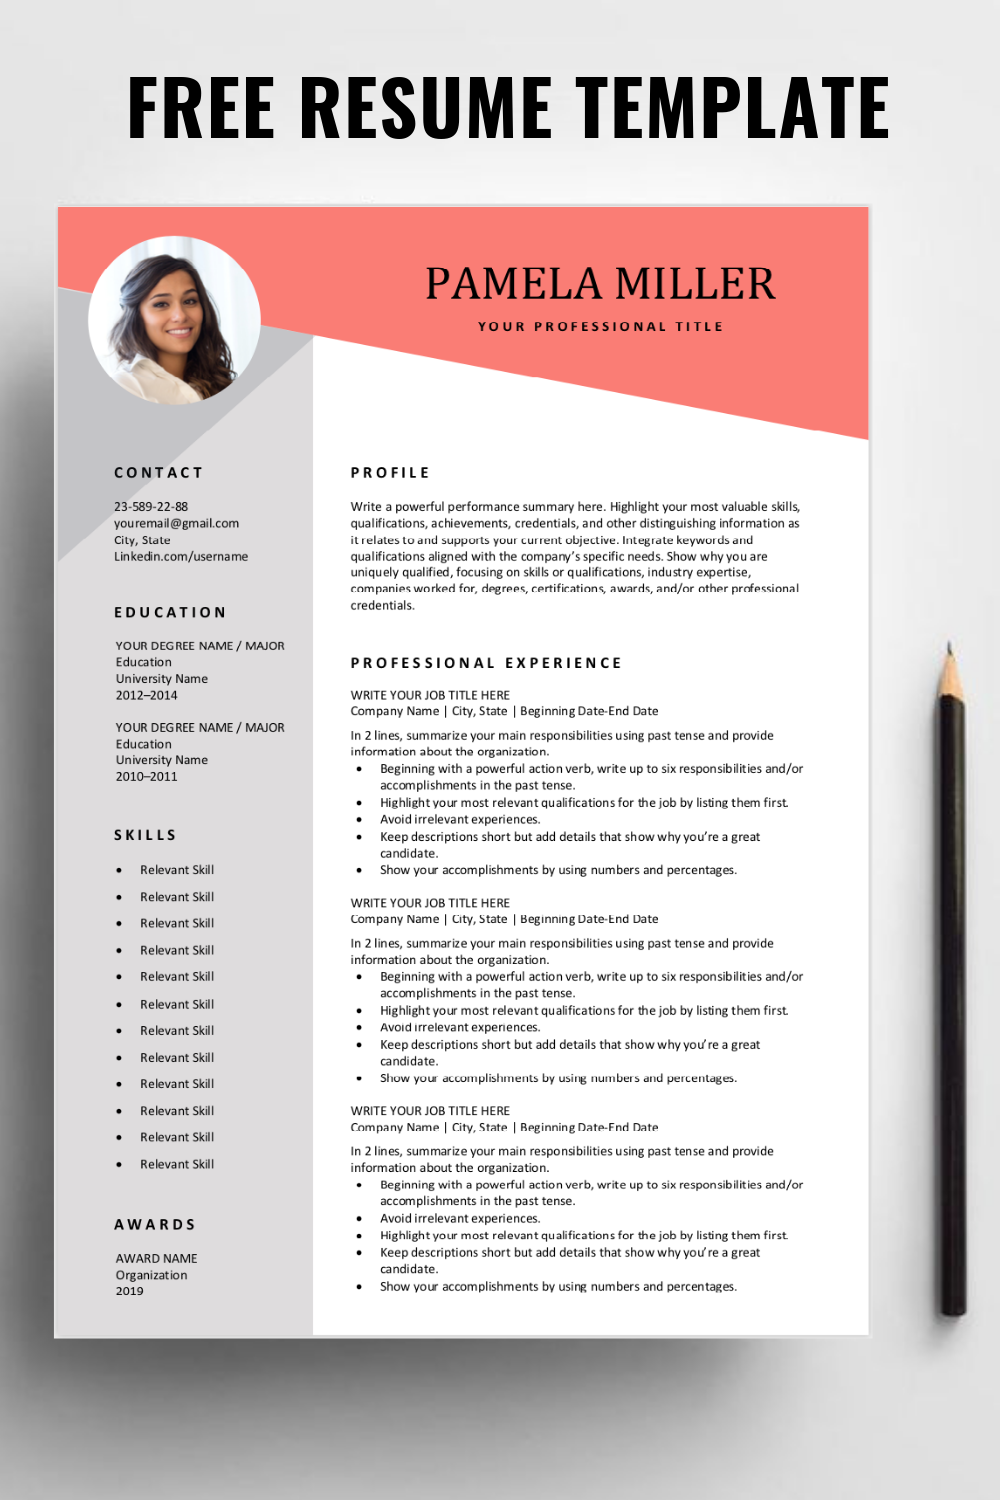 Free Resume Template Resume Template Ideas Of Resume Template